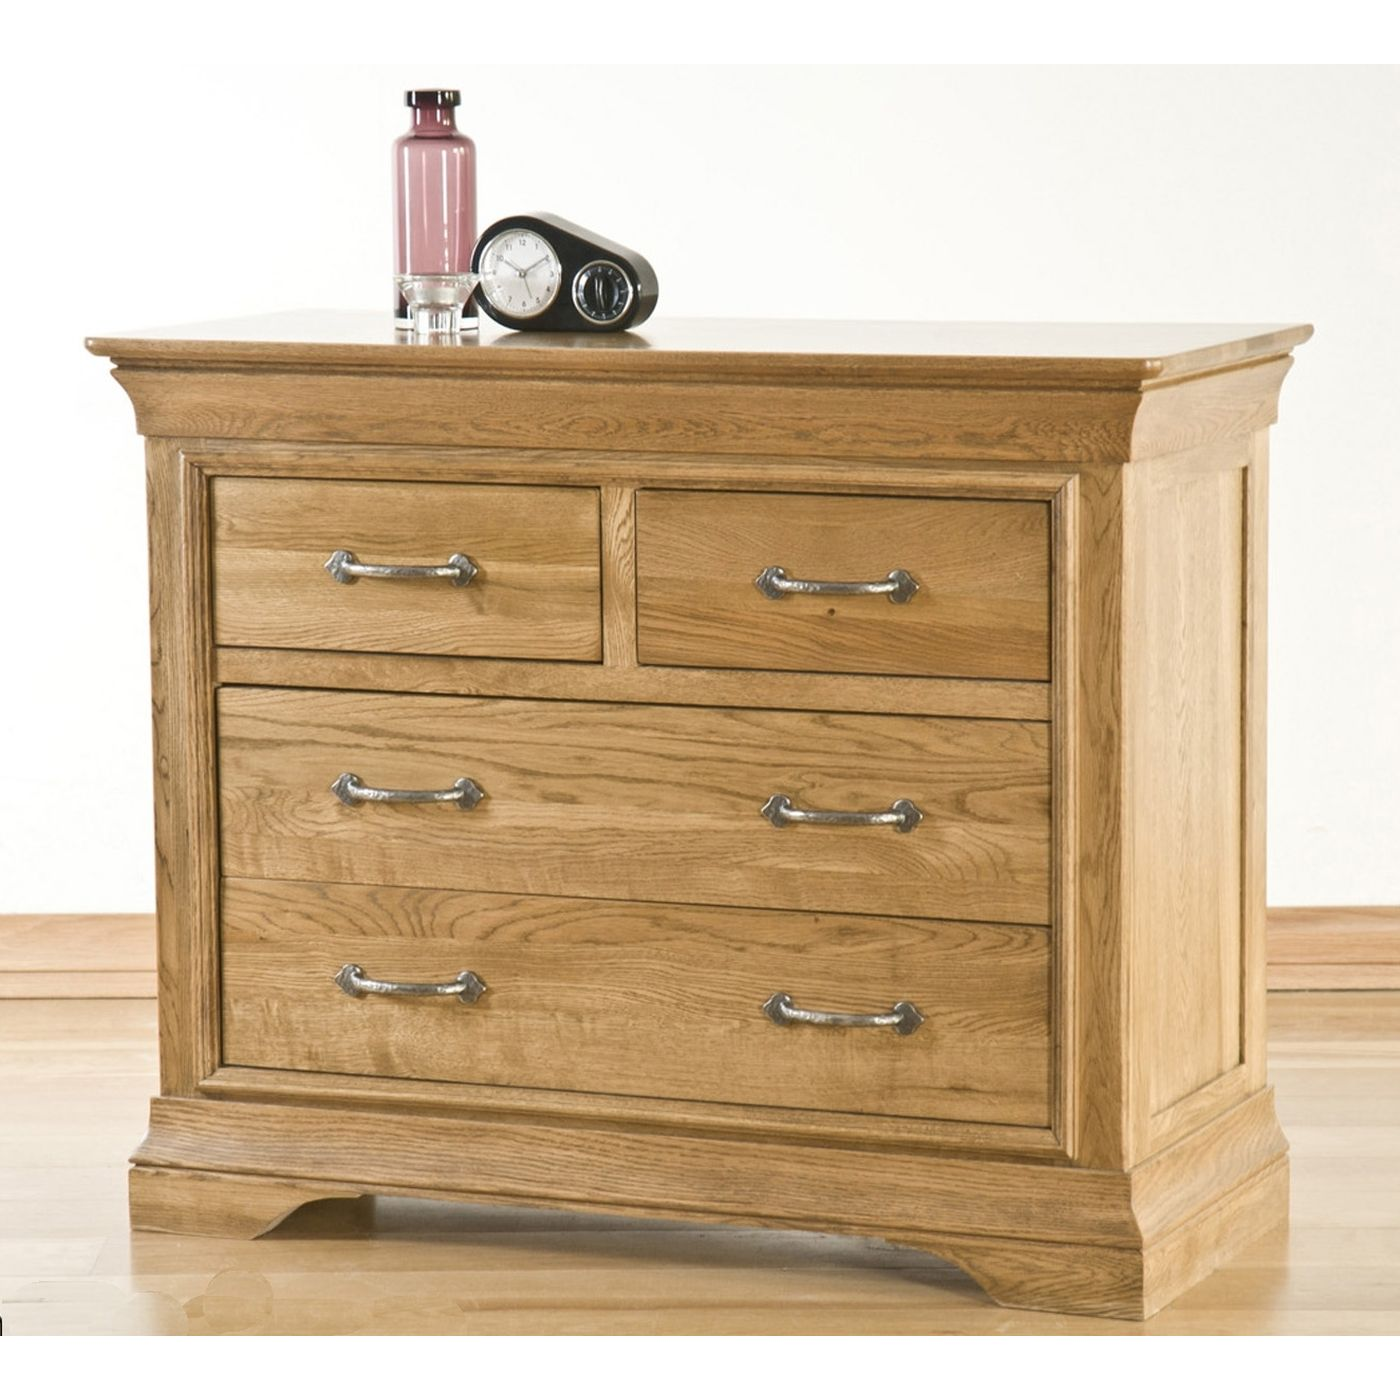 Toulon solid oak bedroom furniture over chest of